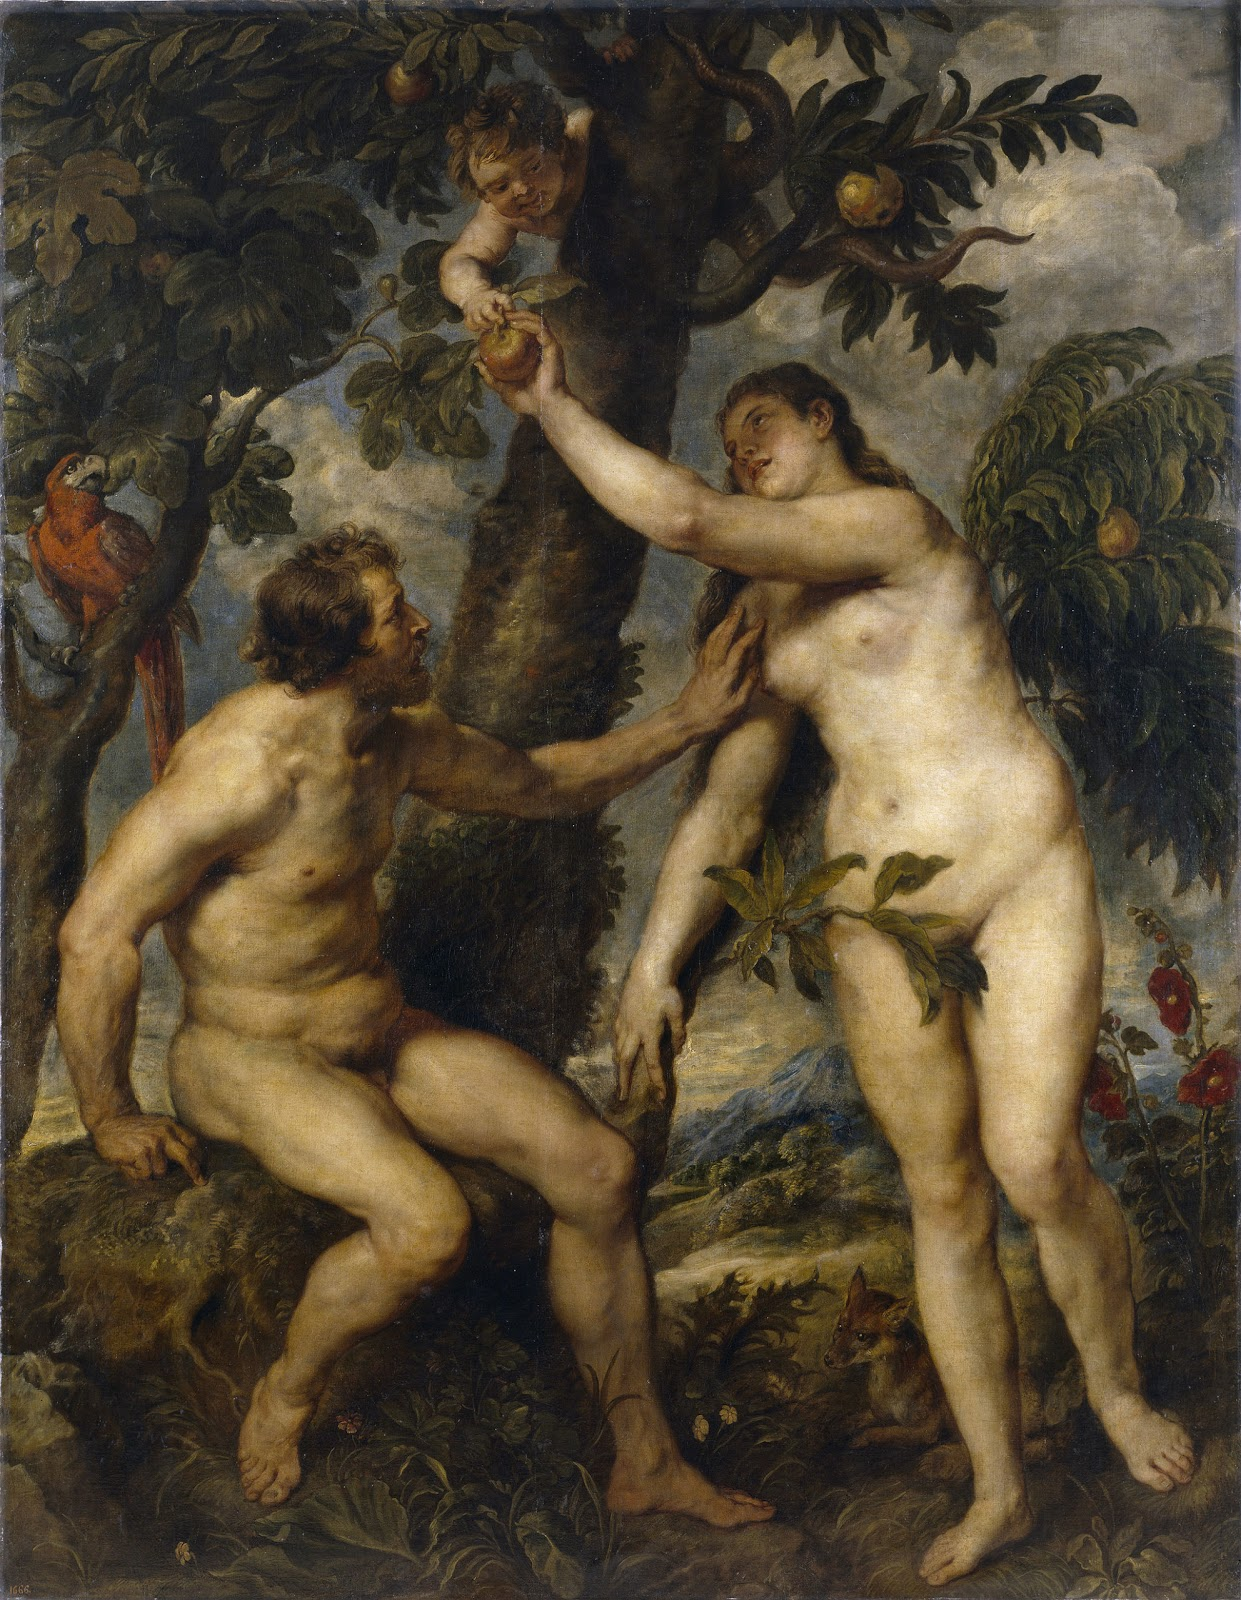 Sudenfall - The Fall of Man - Adam and Eve - Peter Paul Rubens (Public Domain)